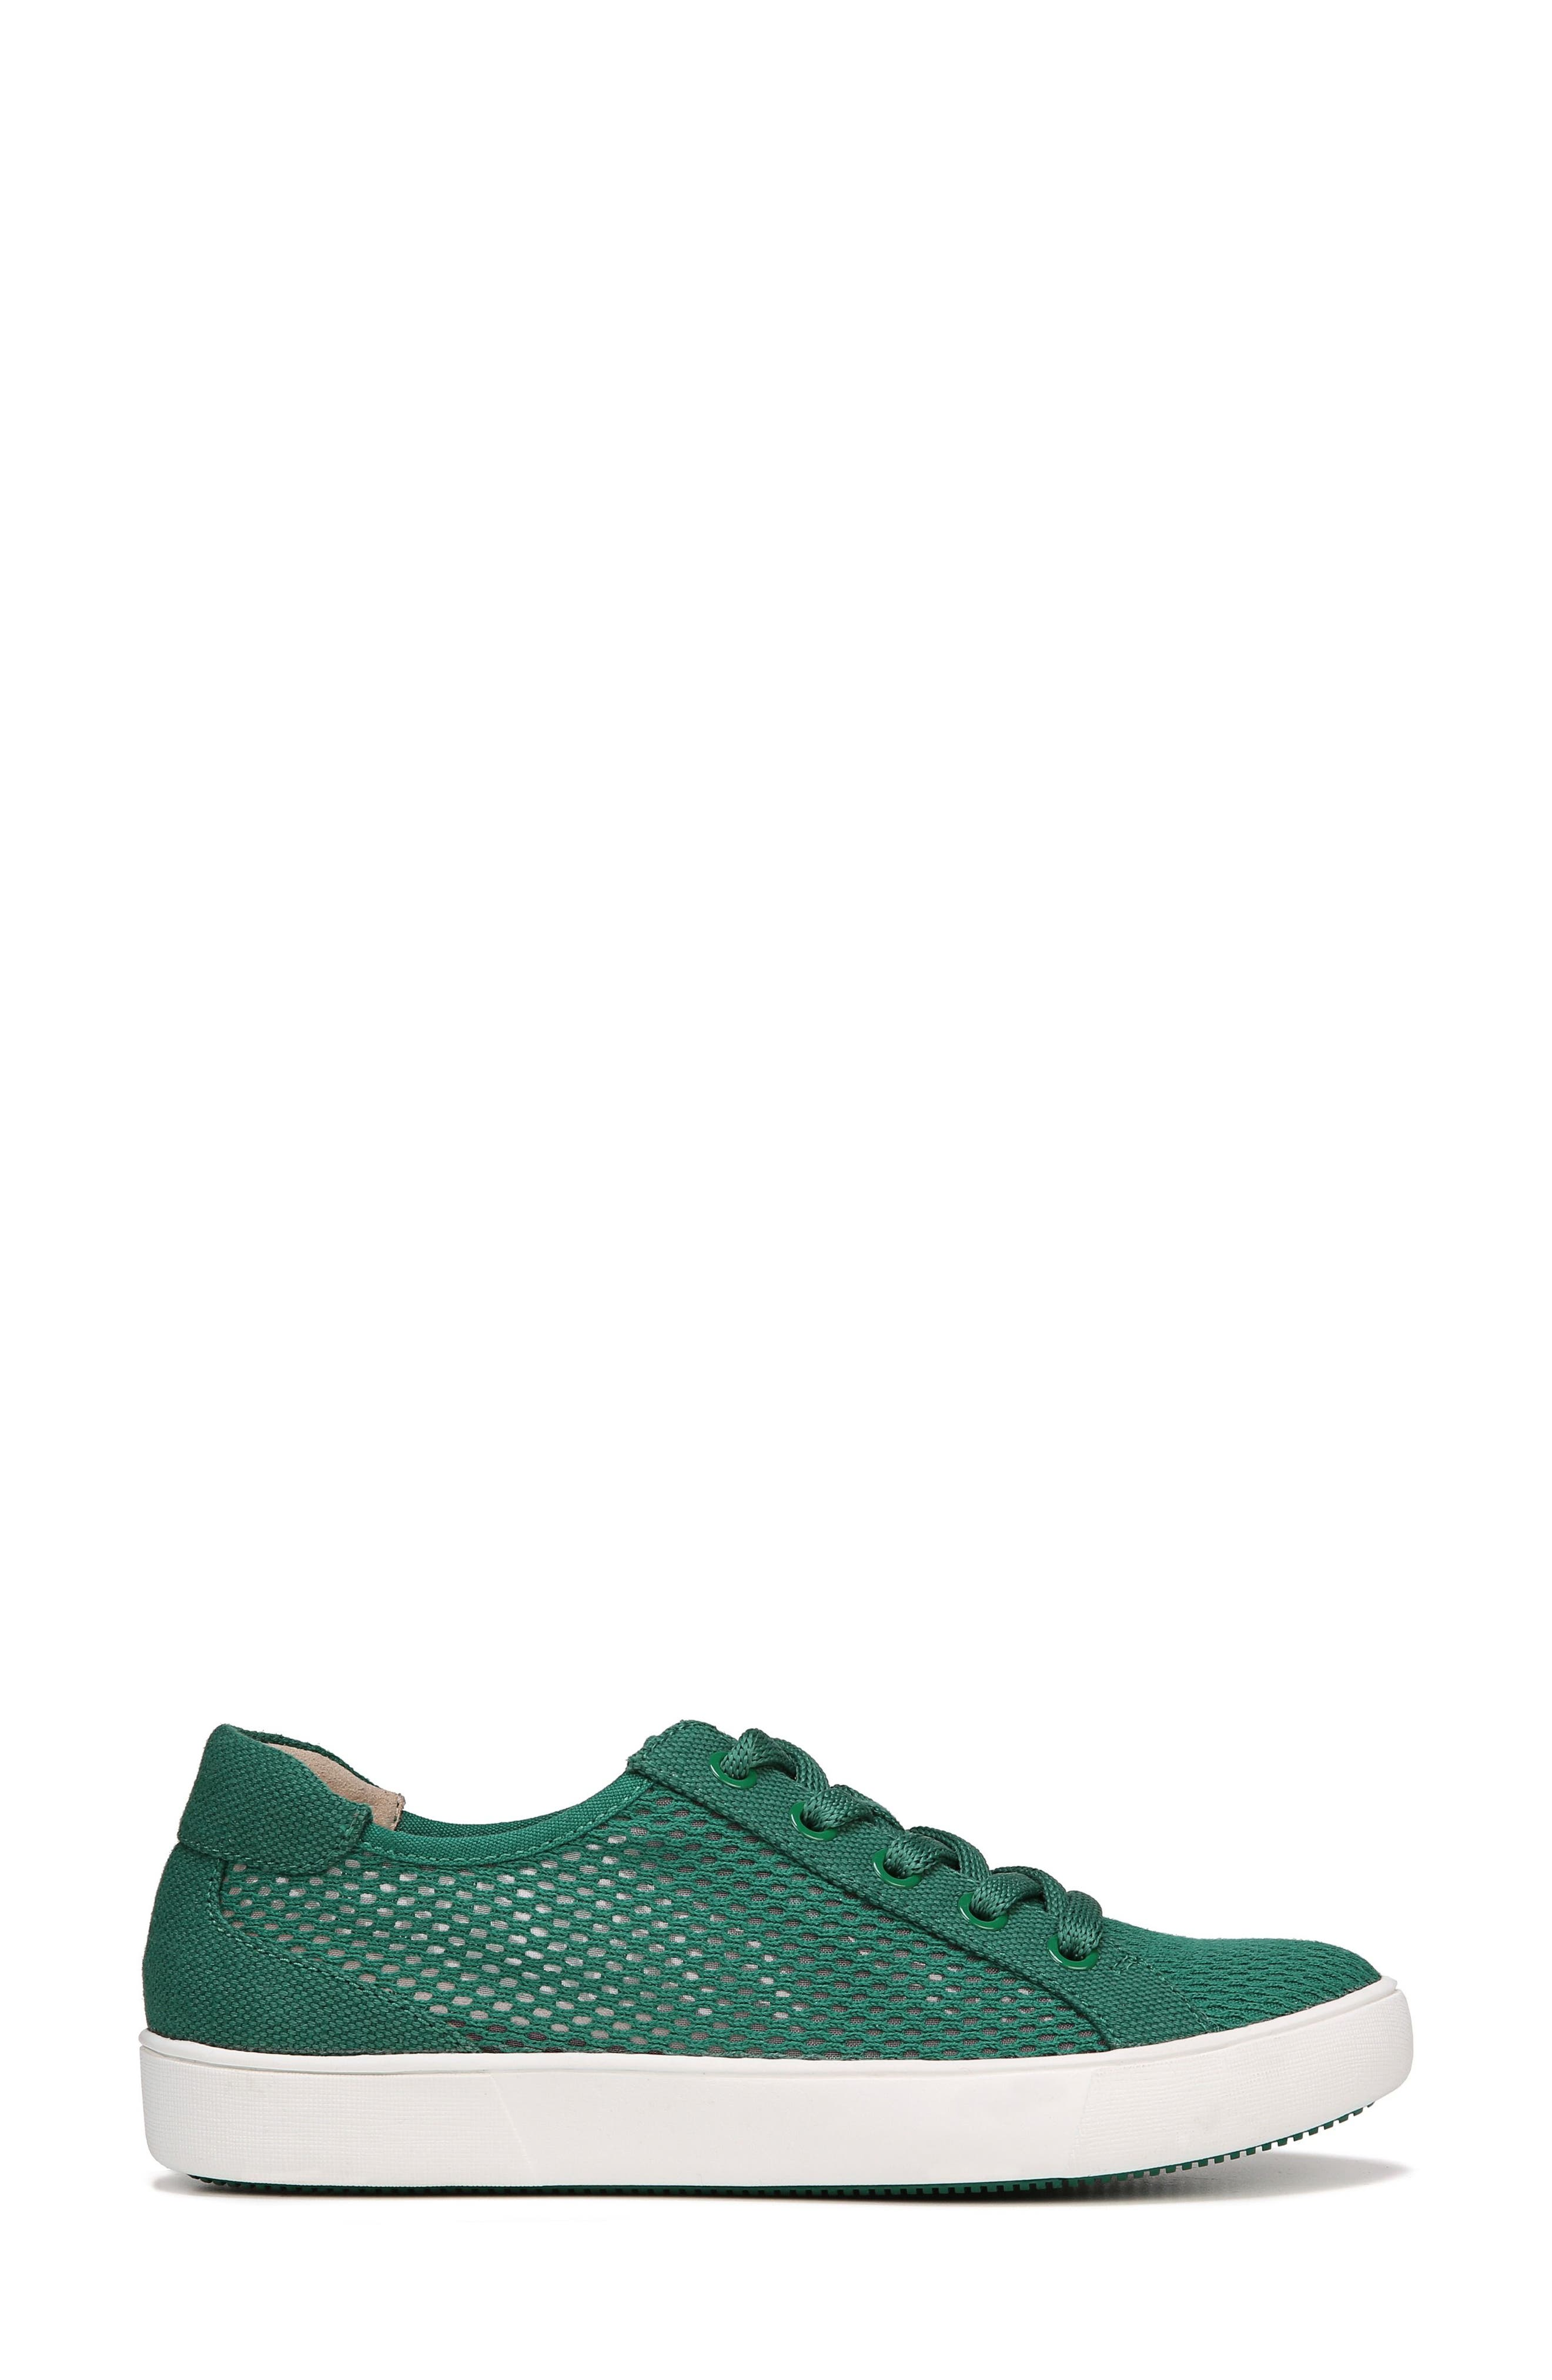 Morrison III Perforated Sneaker,                             Alternate thumbnail 3, color,                             Green Leather